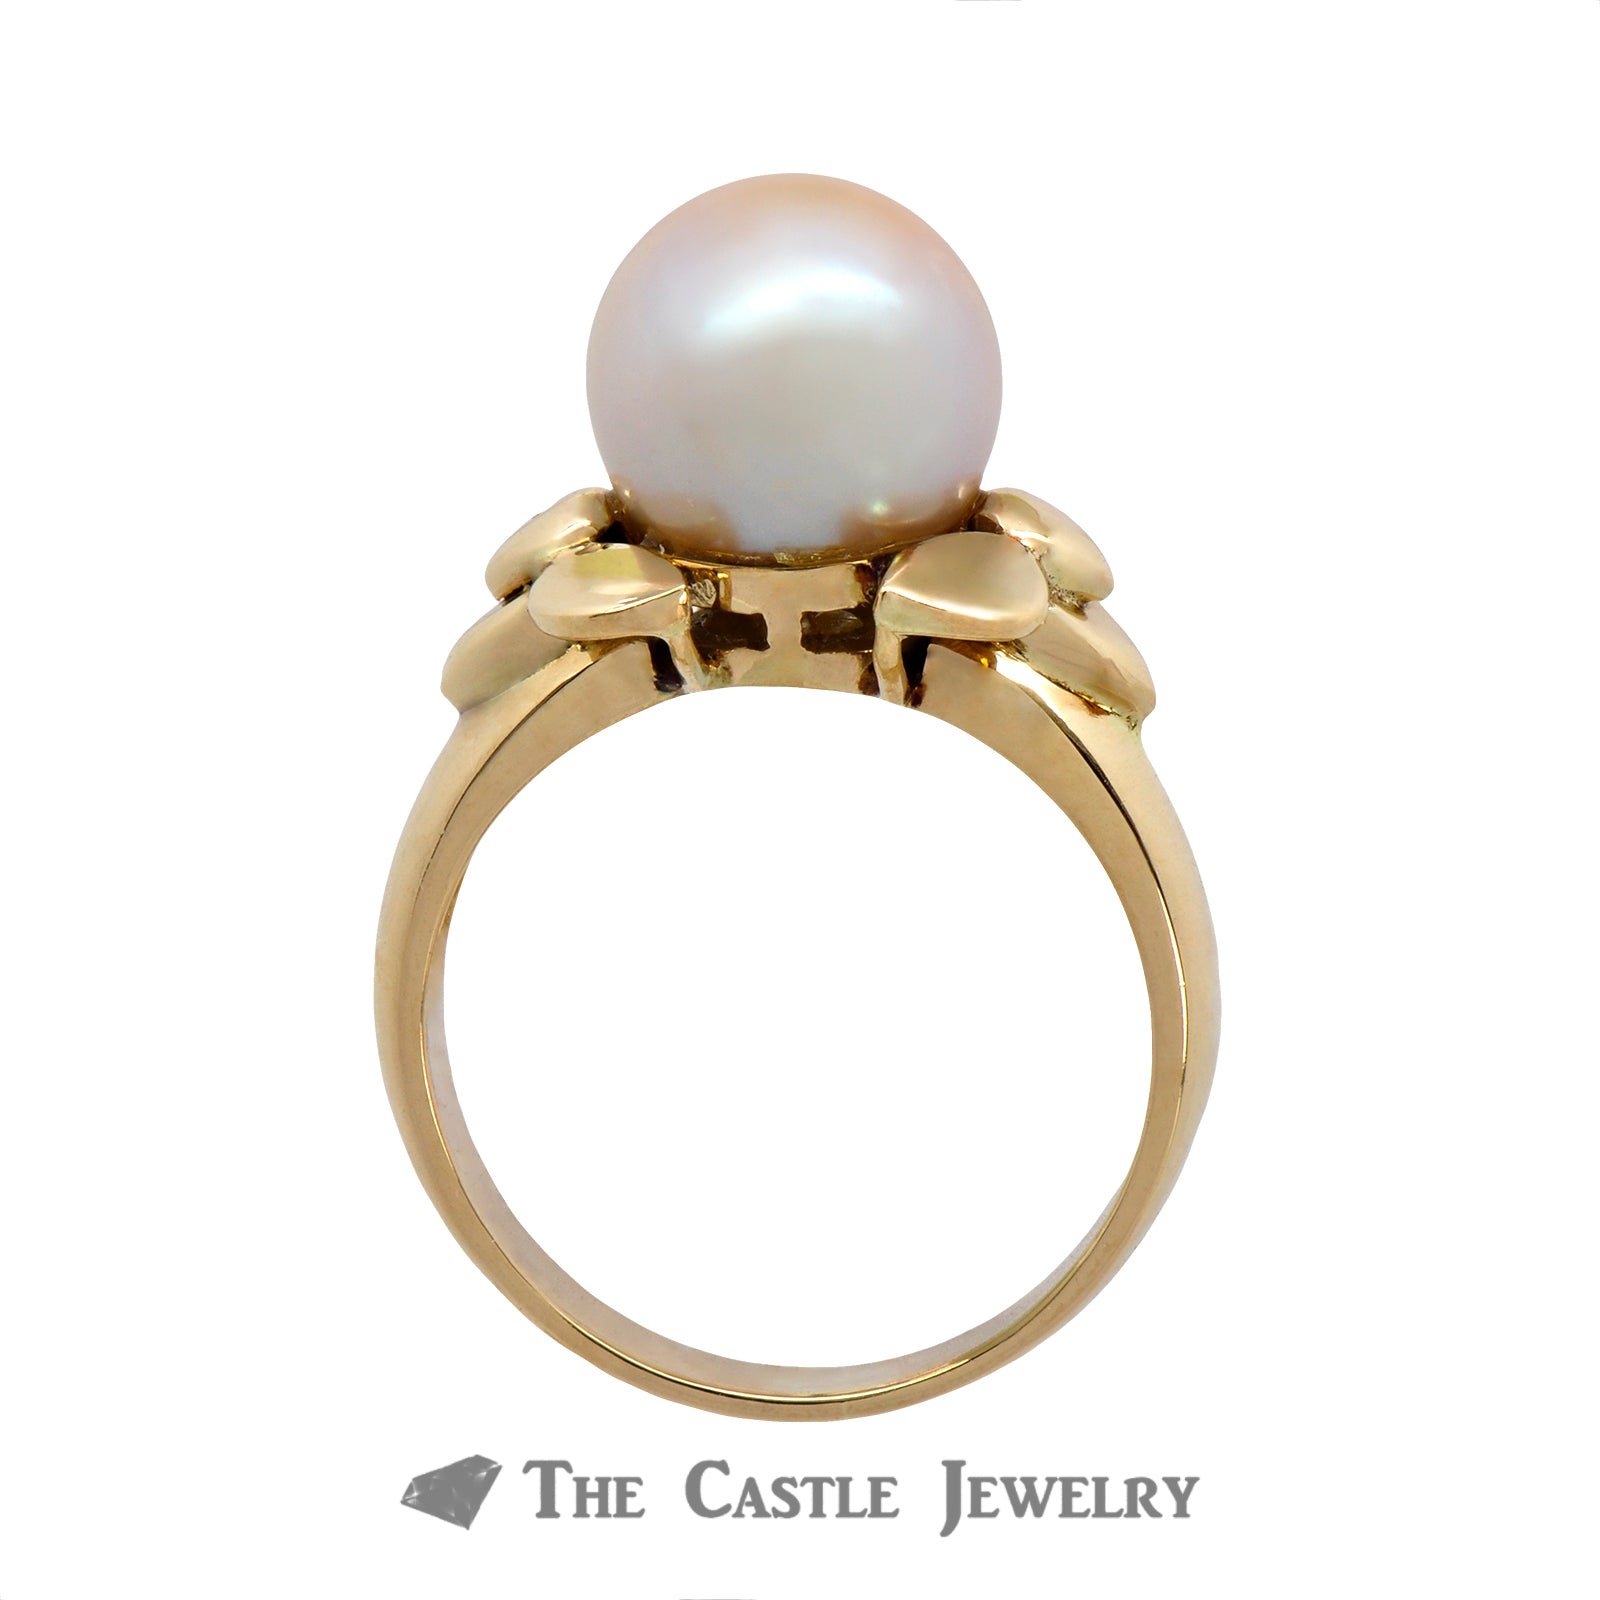 Pearl Ring with Fancy Bow Design Sides in 14K Yellow Gold